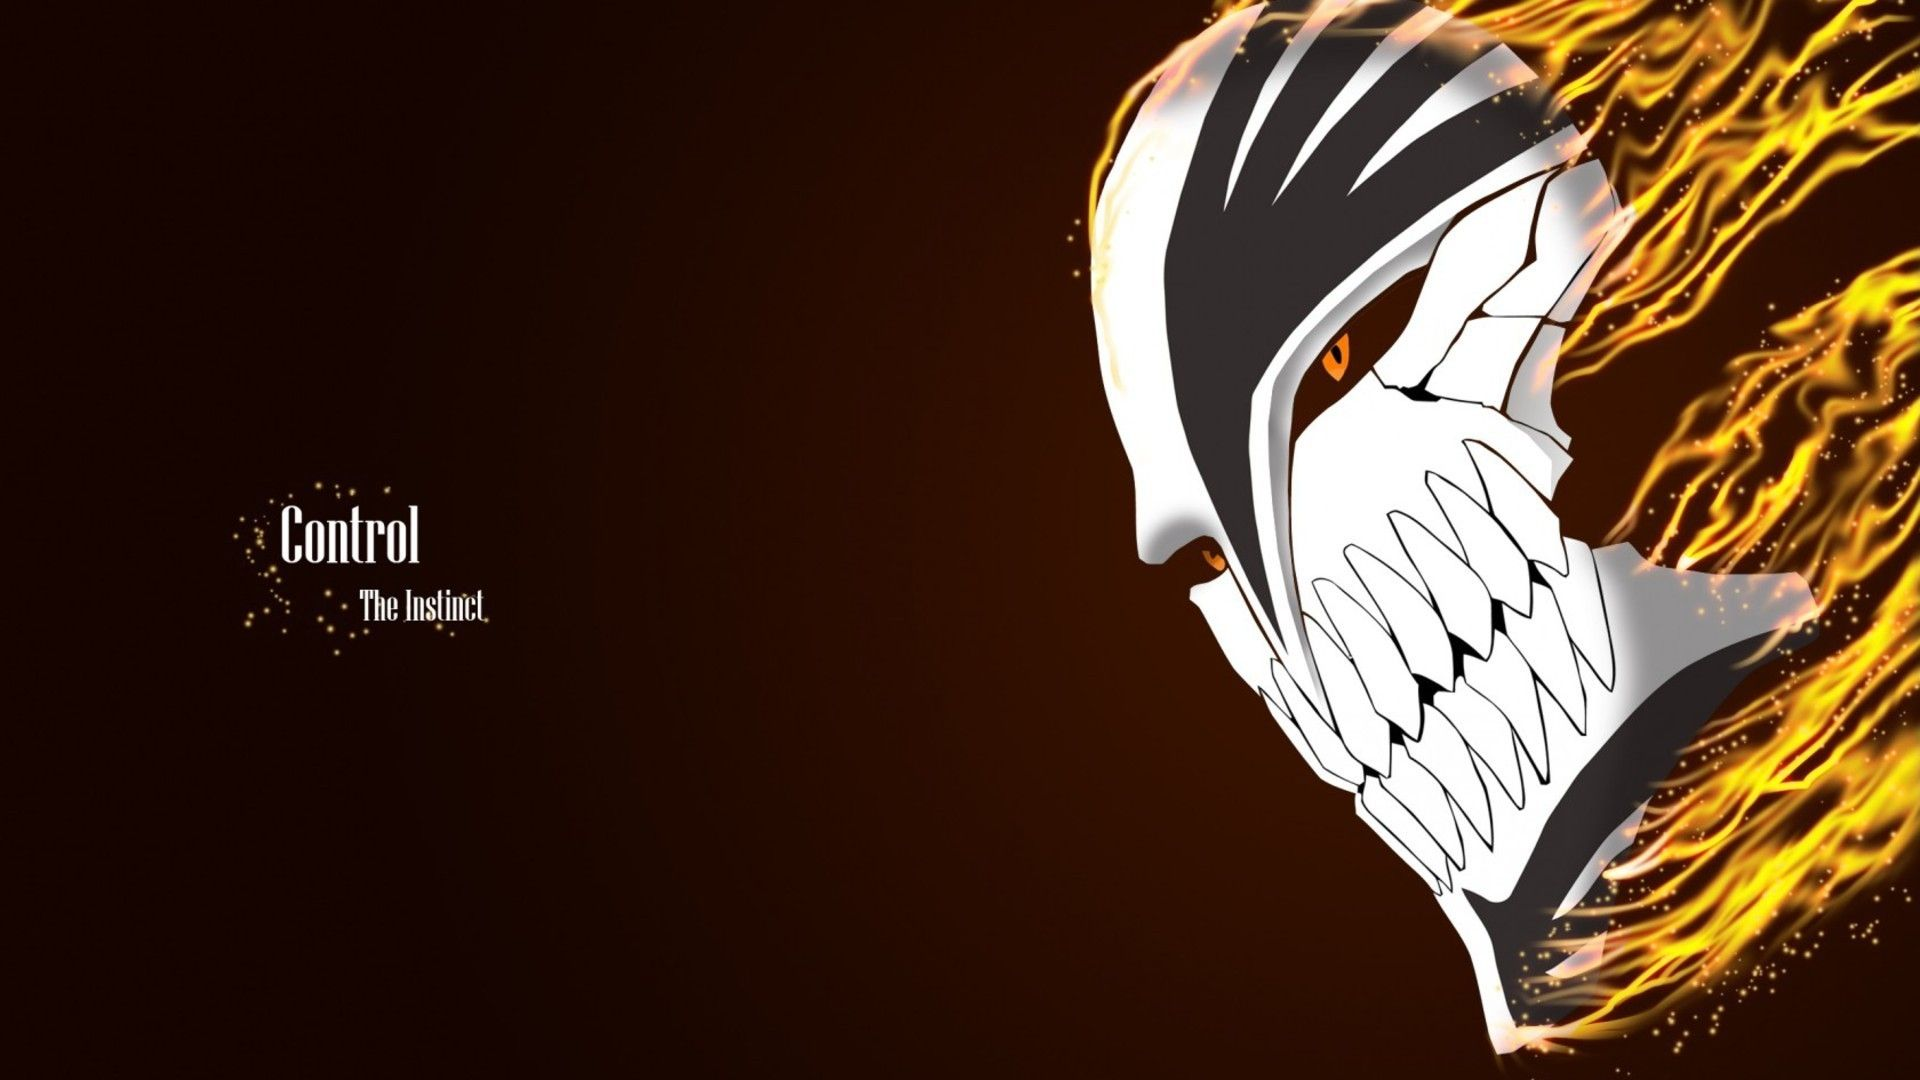 Bleach Wallpapers Hollow Wallpaper 1920x1200 Mask 47